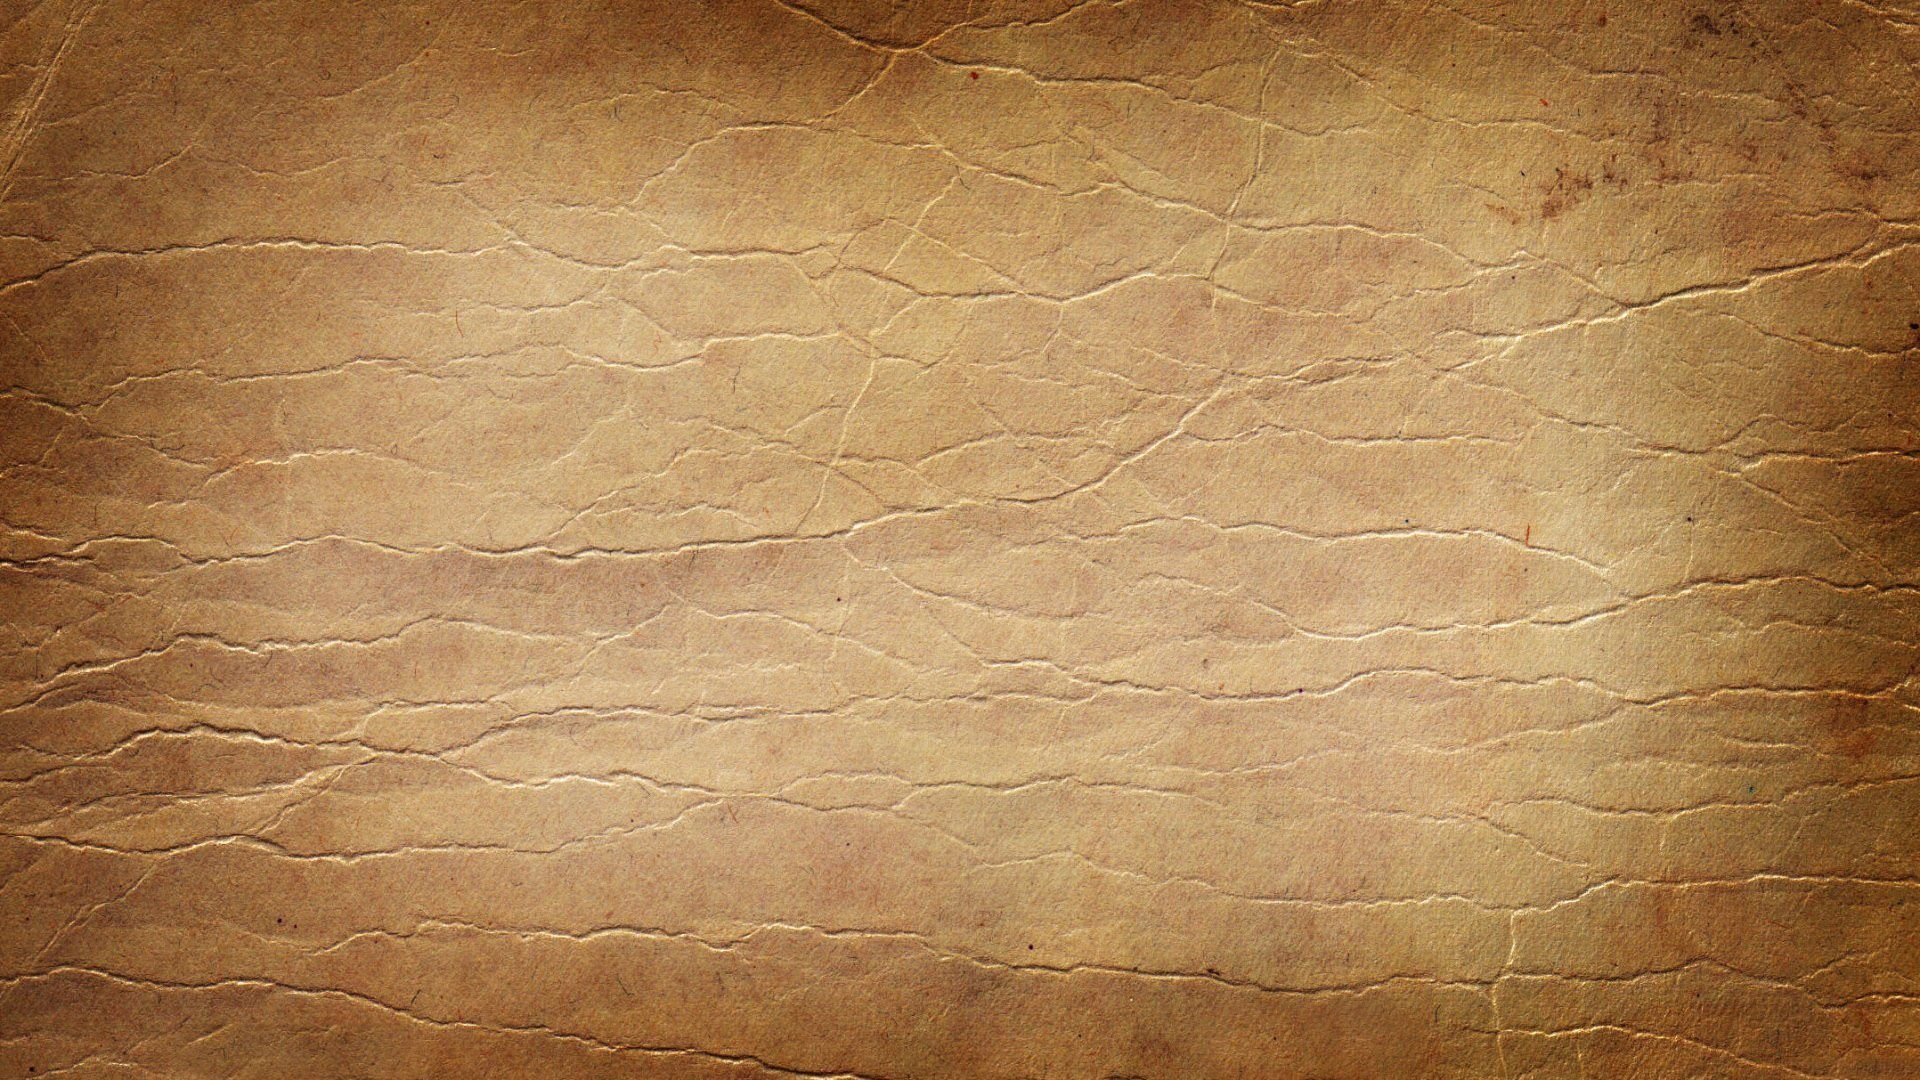 1920x1080 paper texture backgrounds wallpaper preview for Textures and backgrounds